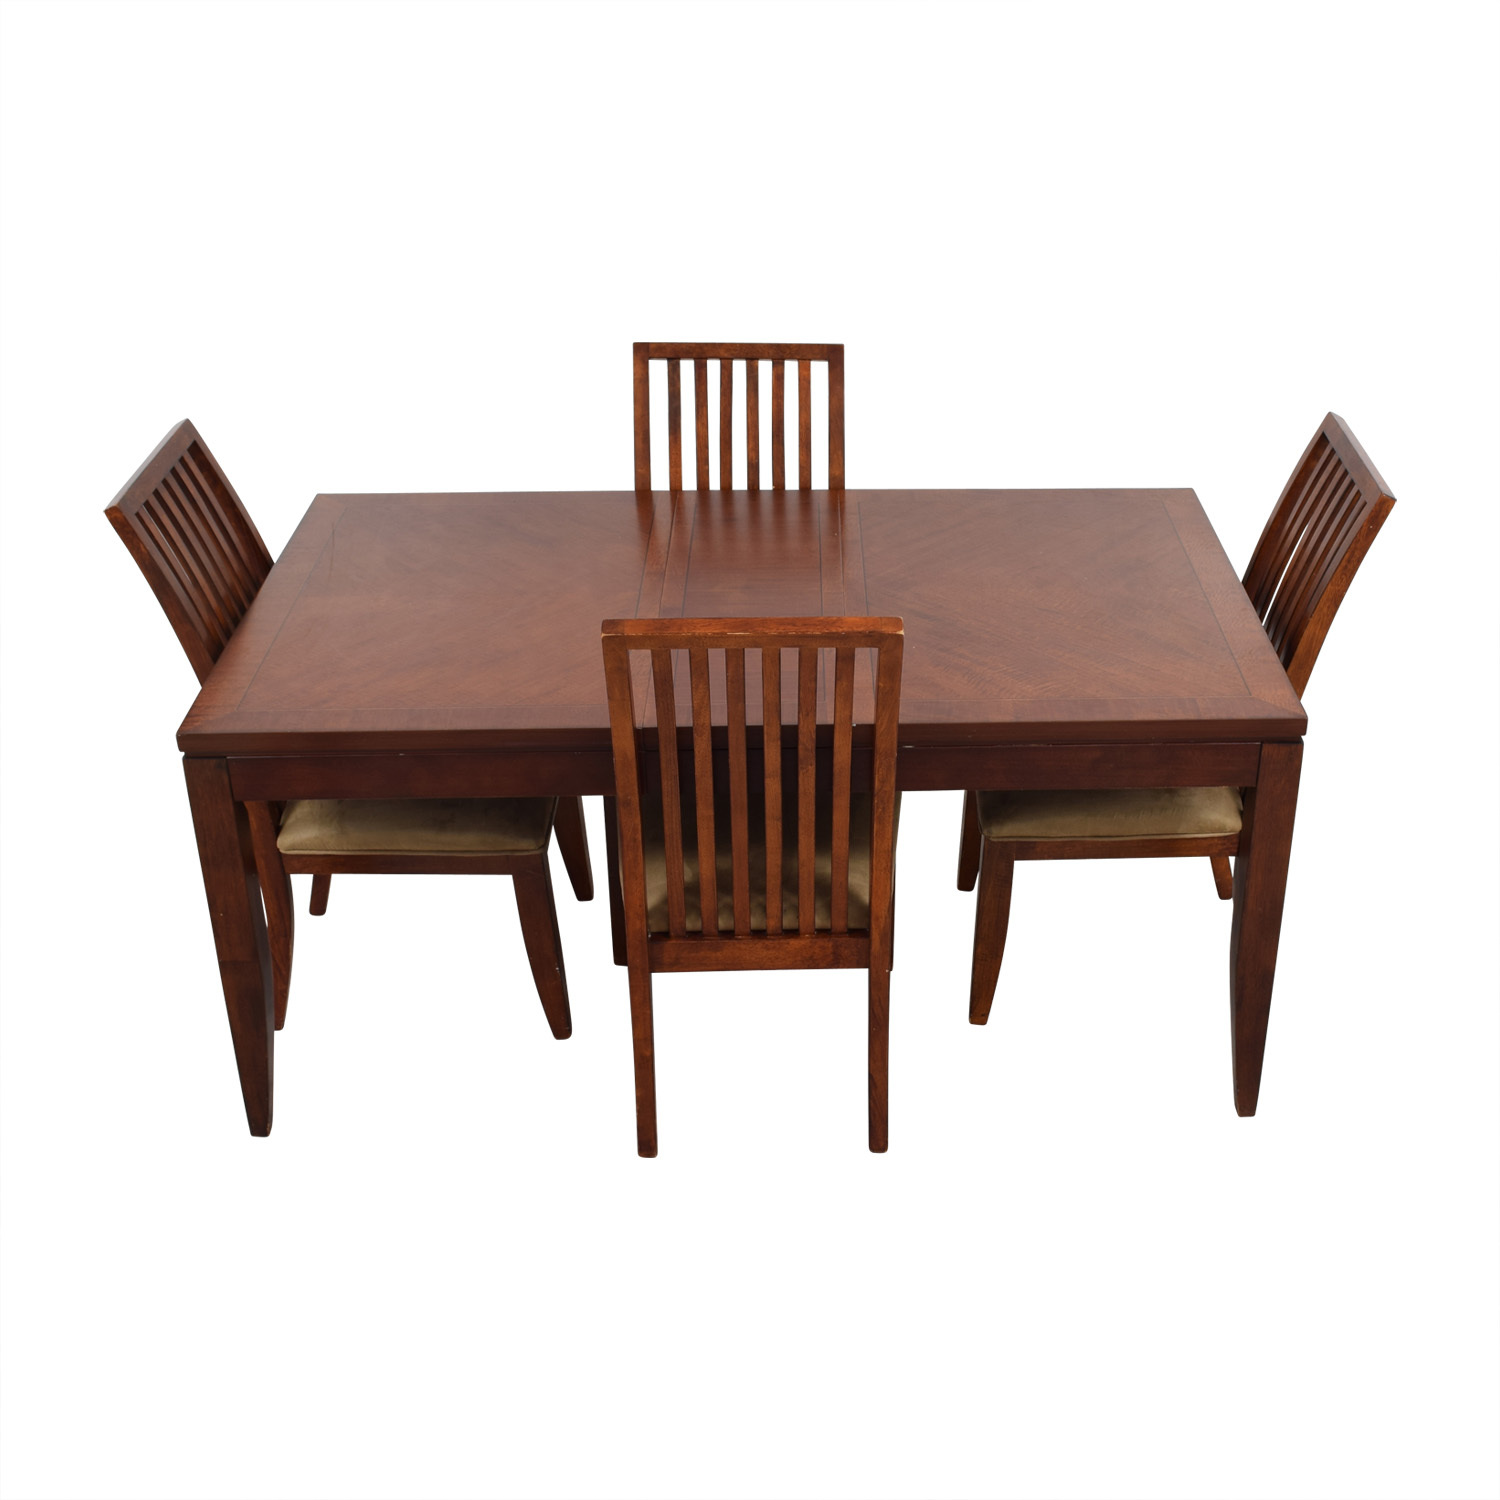 74 off macy39s macy39s wood dining set with extendable for Extendable dining set